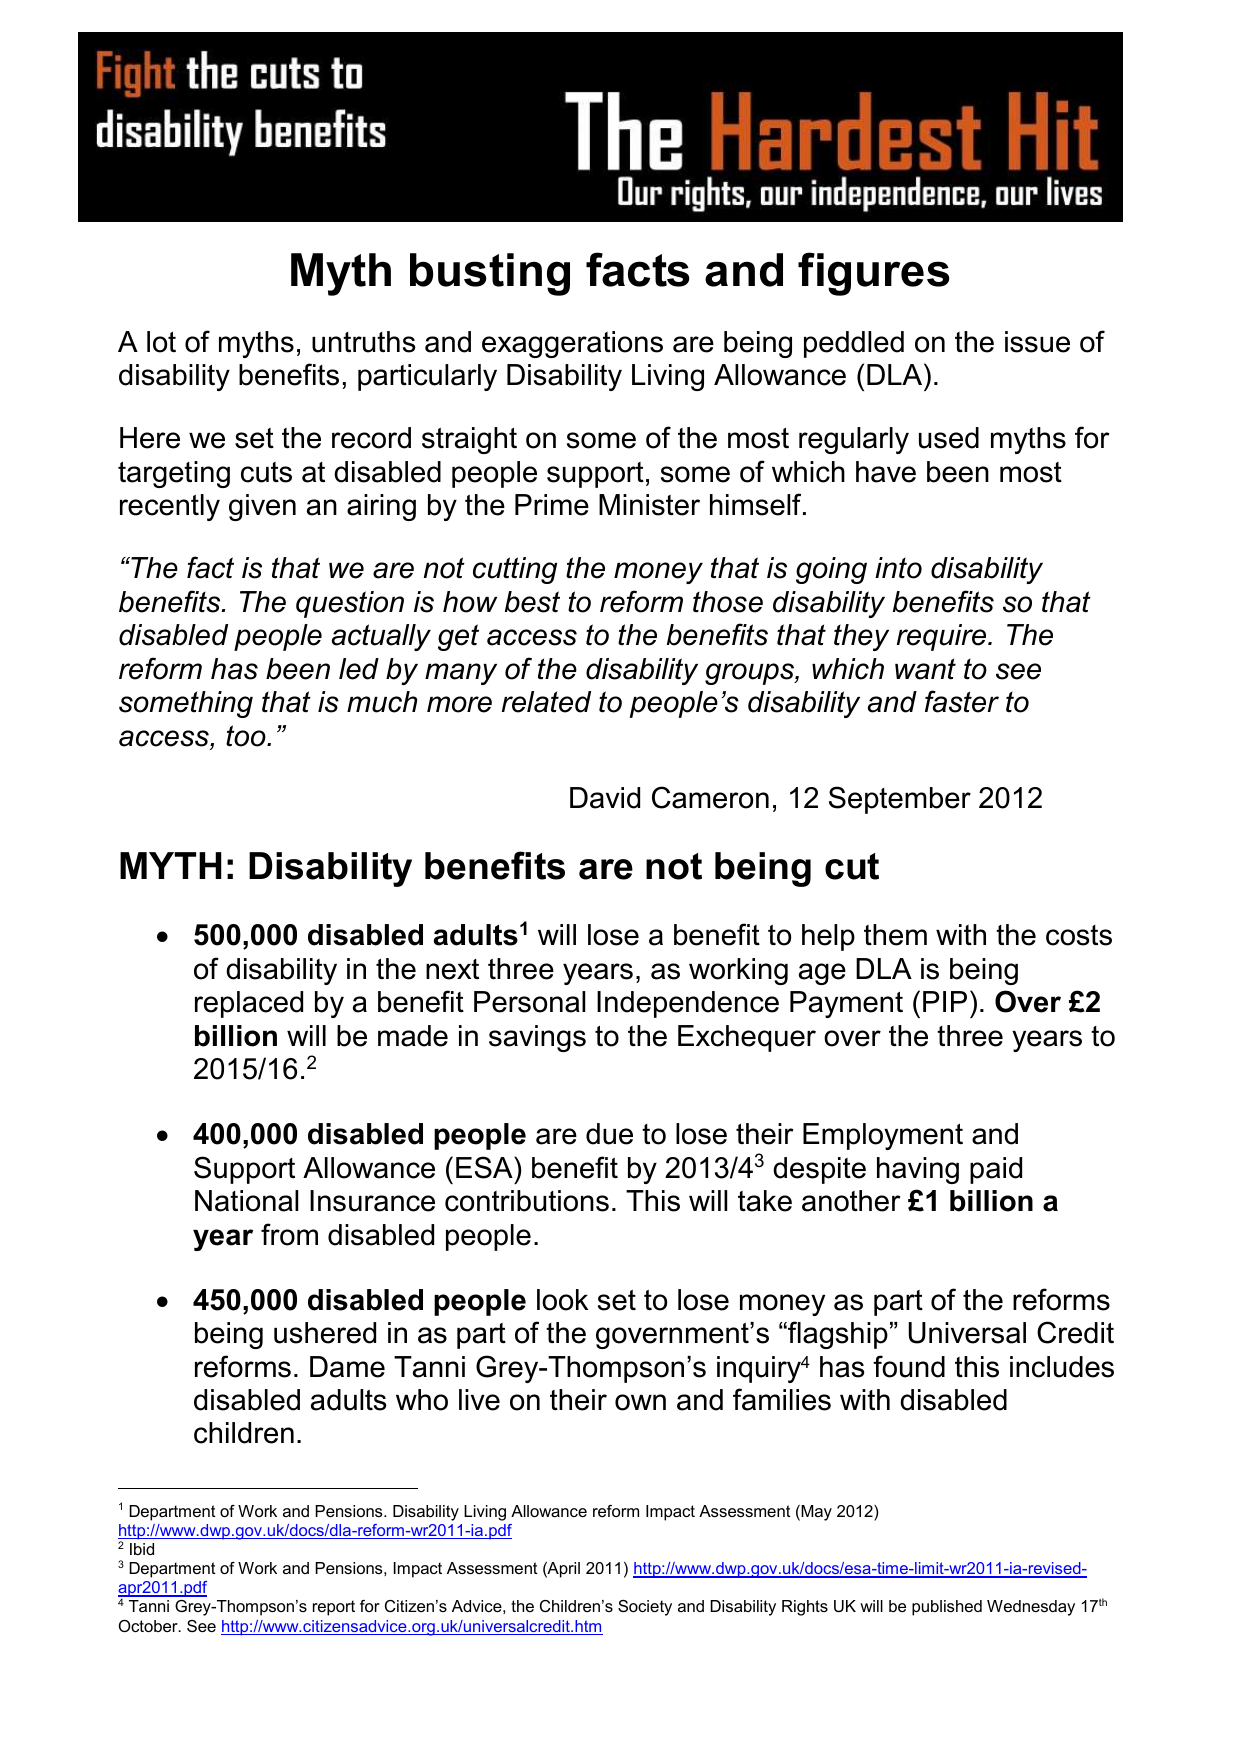 Why Are There So Many More Disabled >> The Disability Benefits Myth Buster